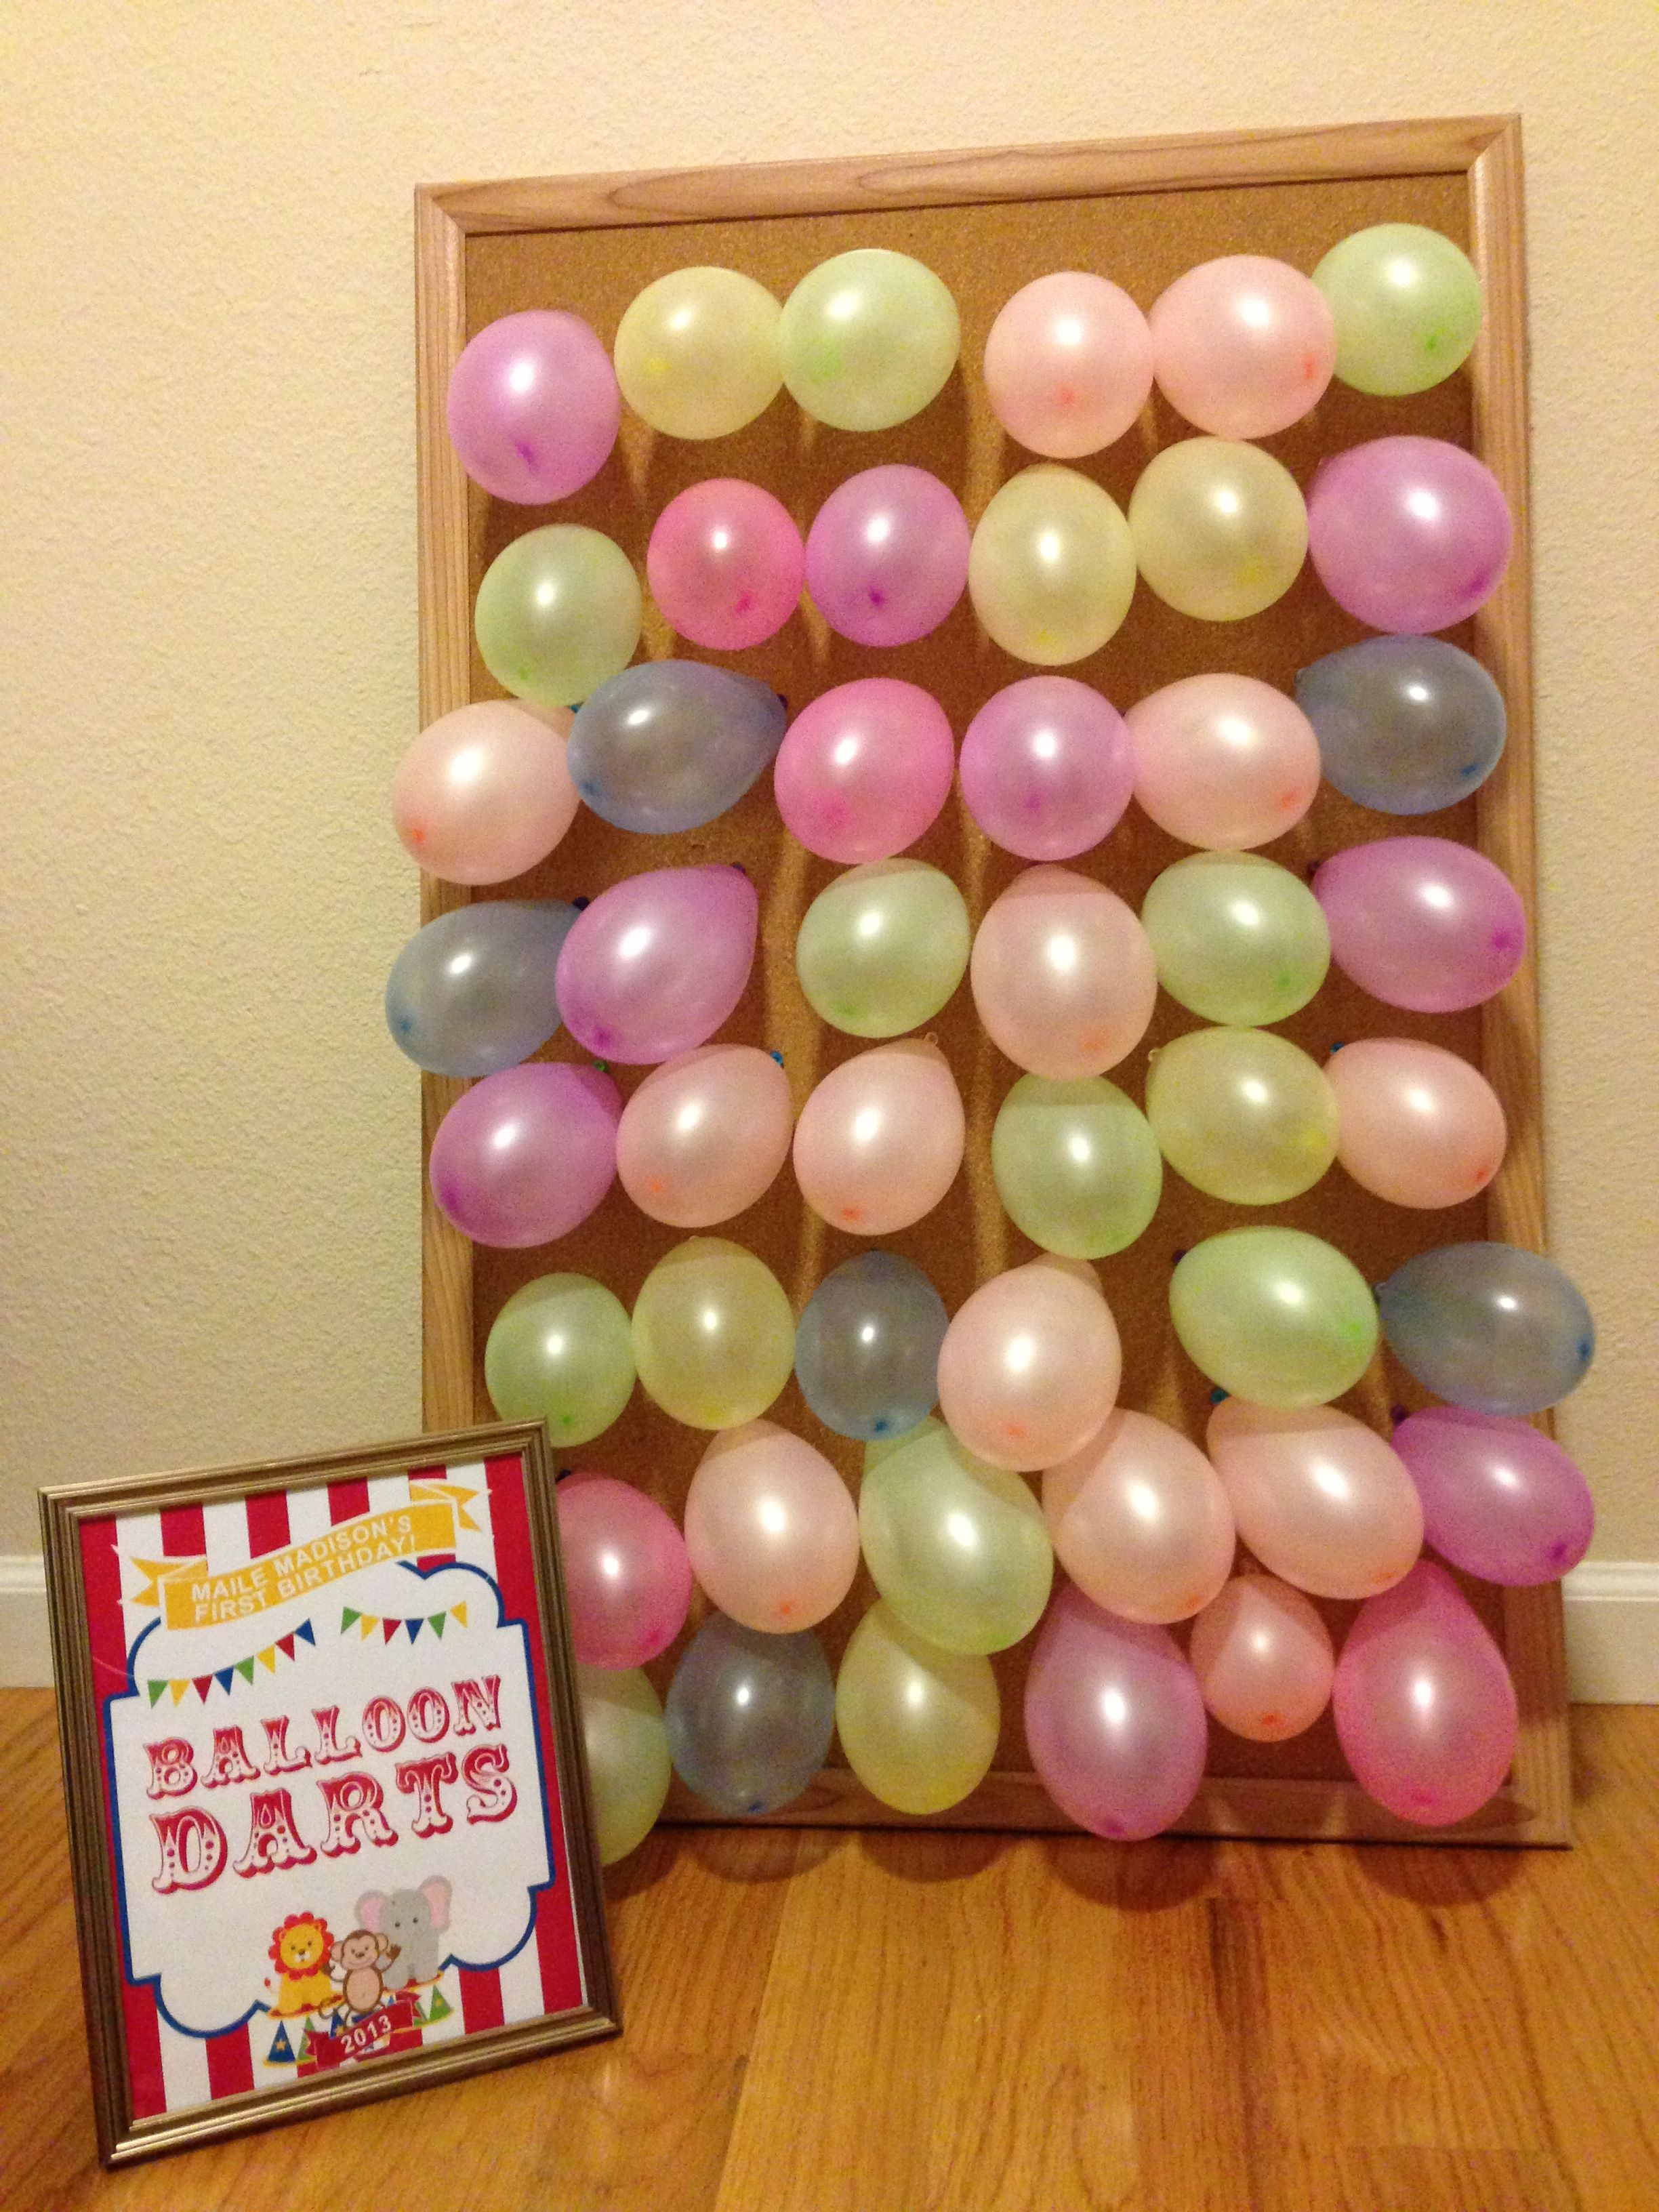 Balloon Darts Carnival Game Use Card Board In Place Of Cork Board To